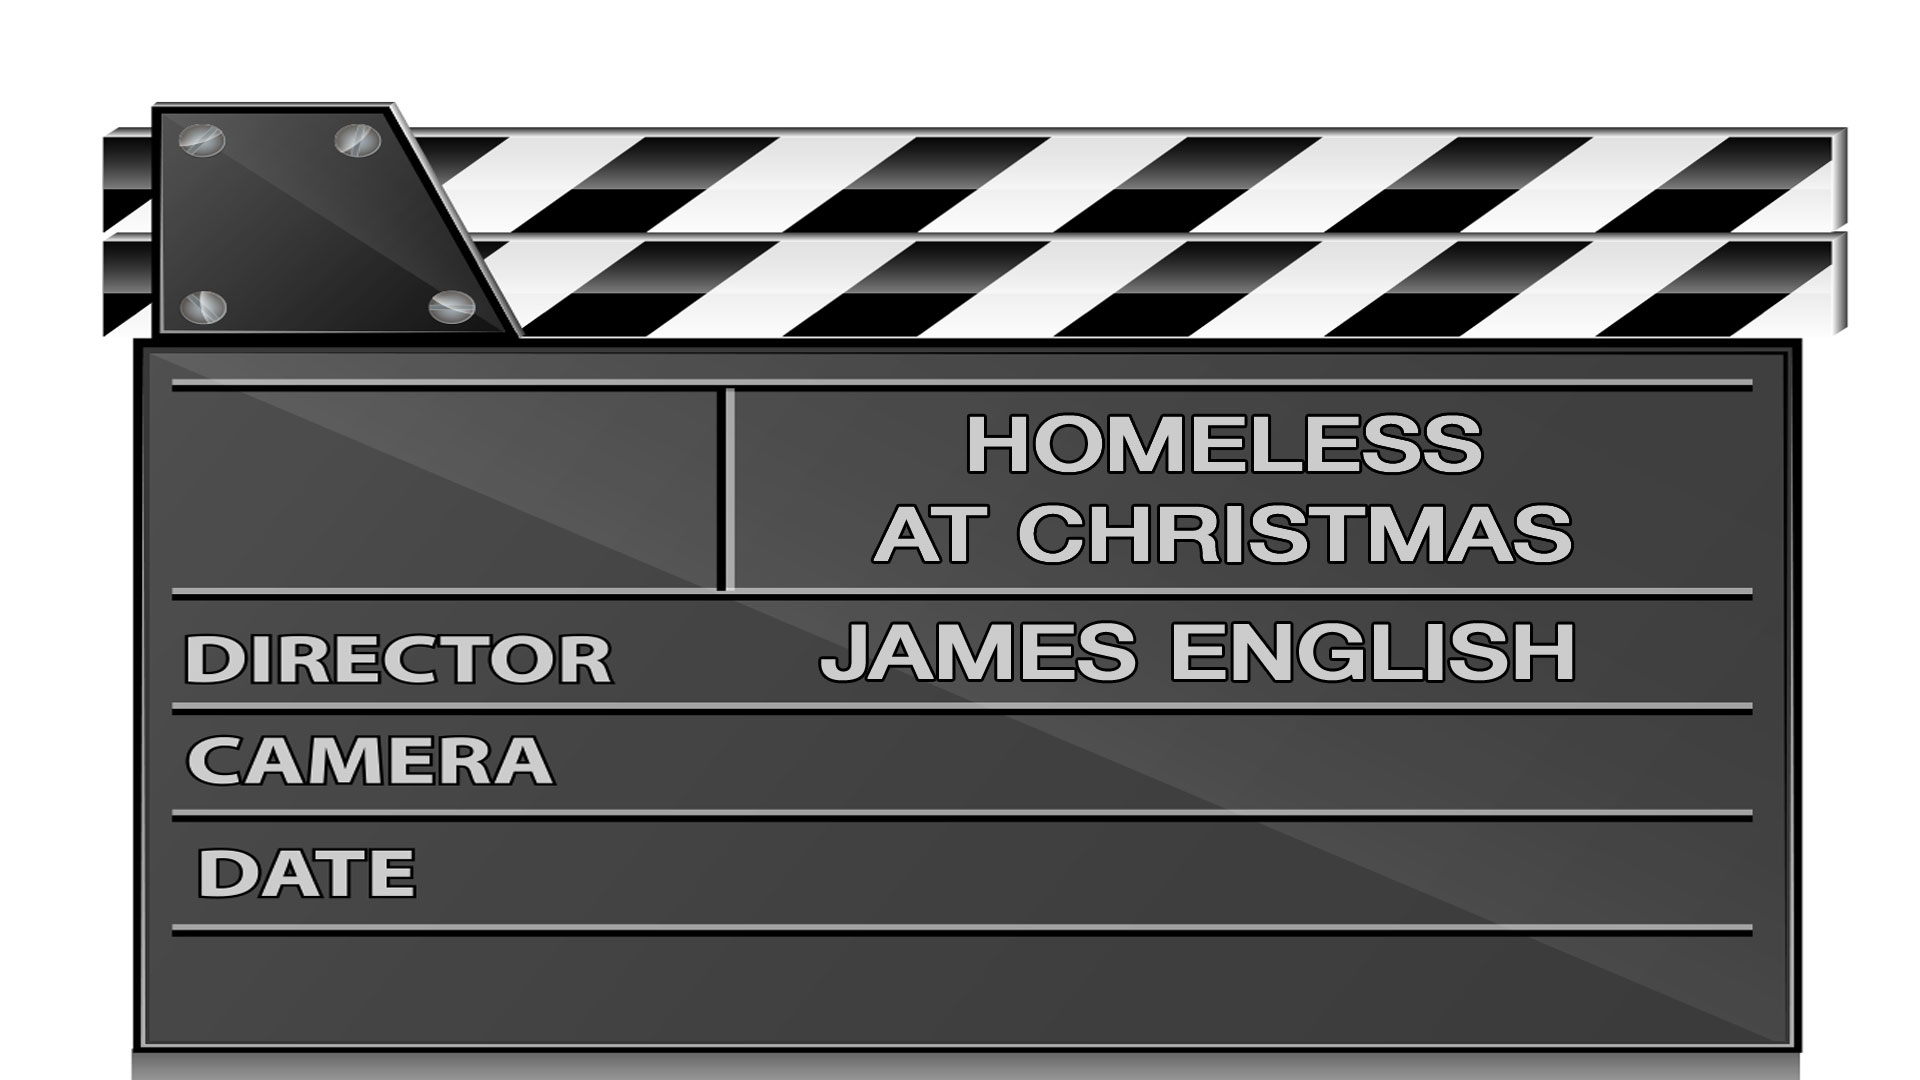 Homeless at Ch_istmas by James English